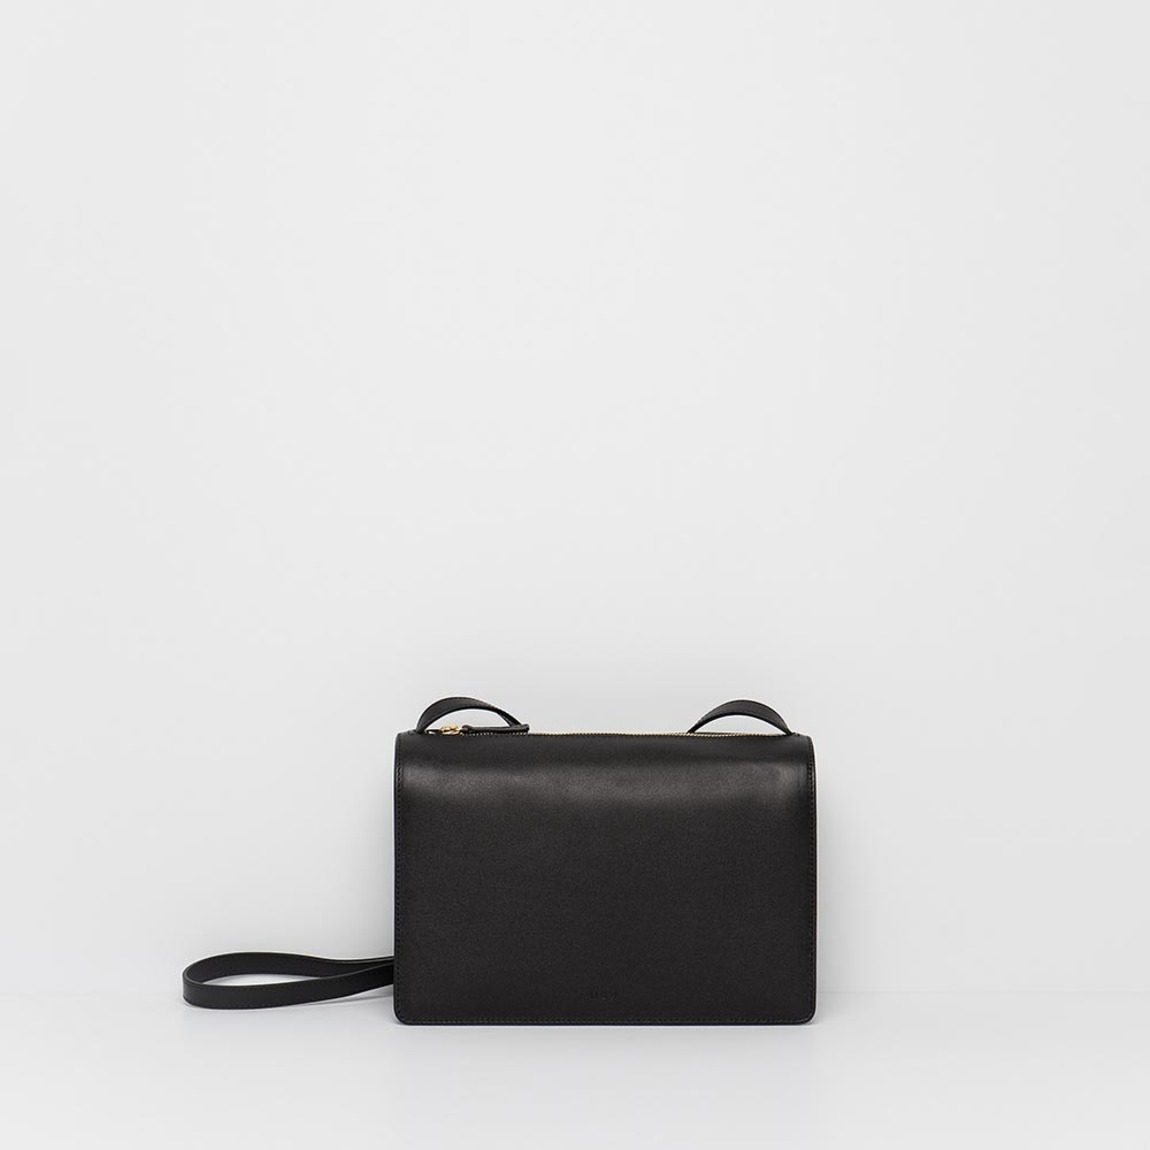 Round Square Bag Black